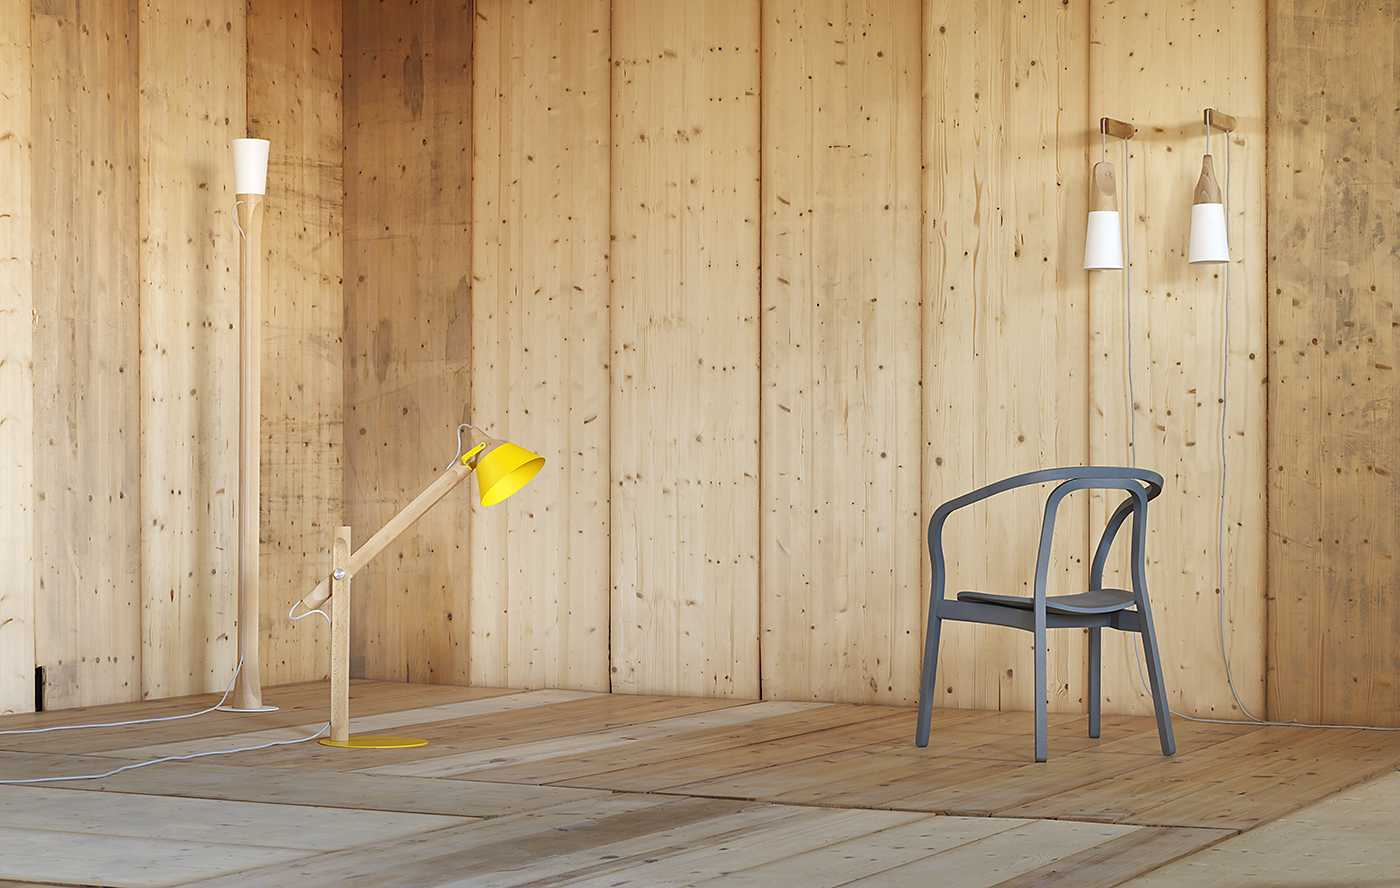 Slope wall lamp by miniforms design skrivo for Perline in legno per pareti prezzi